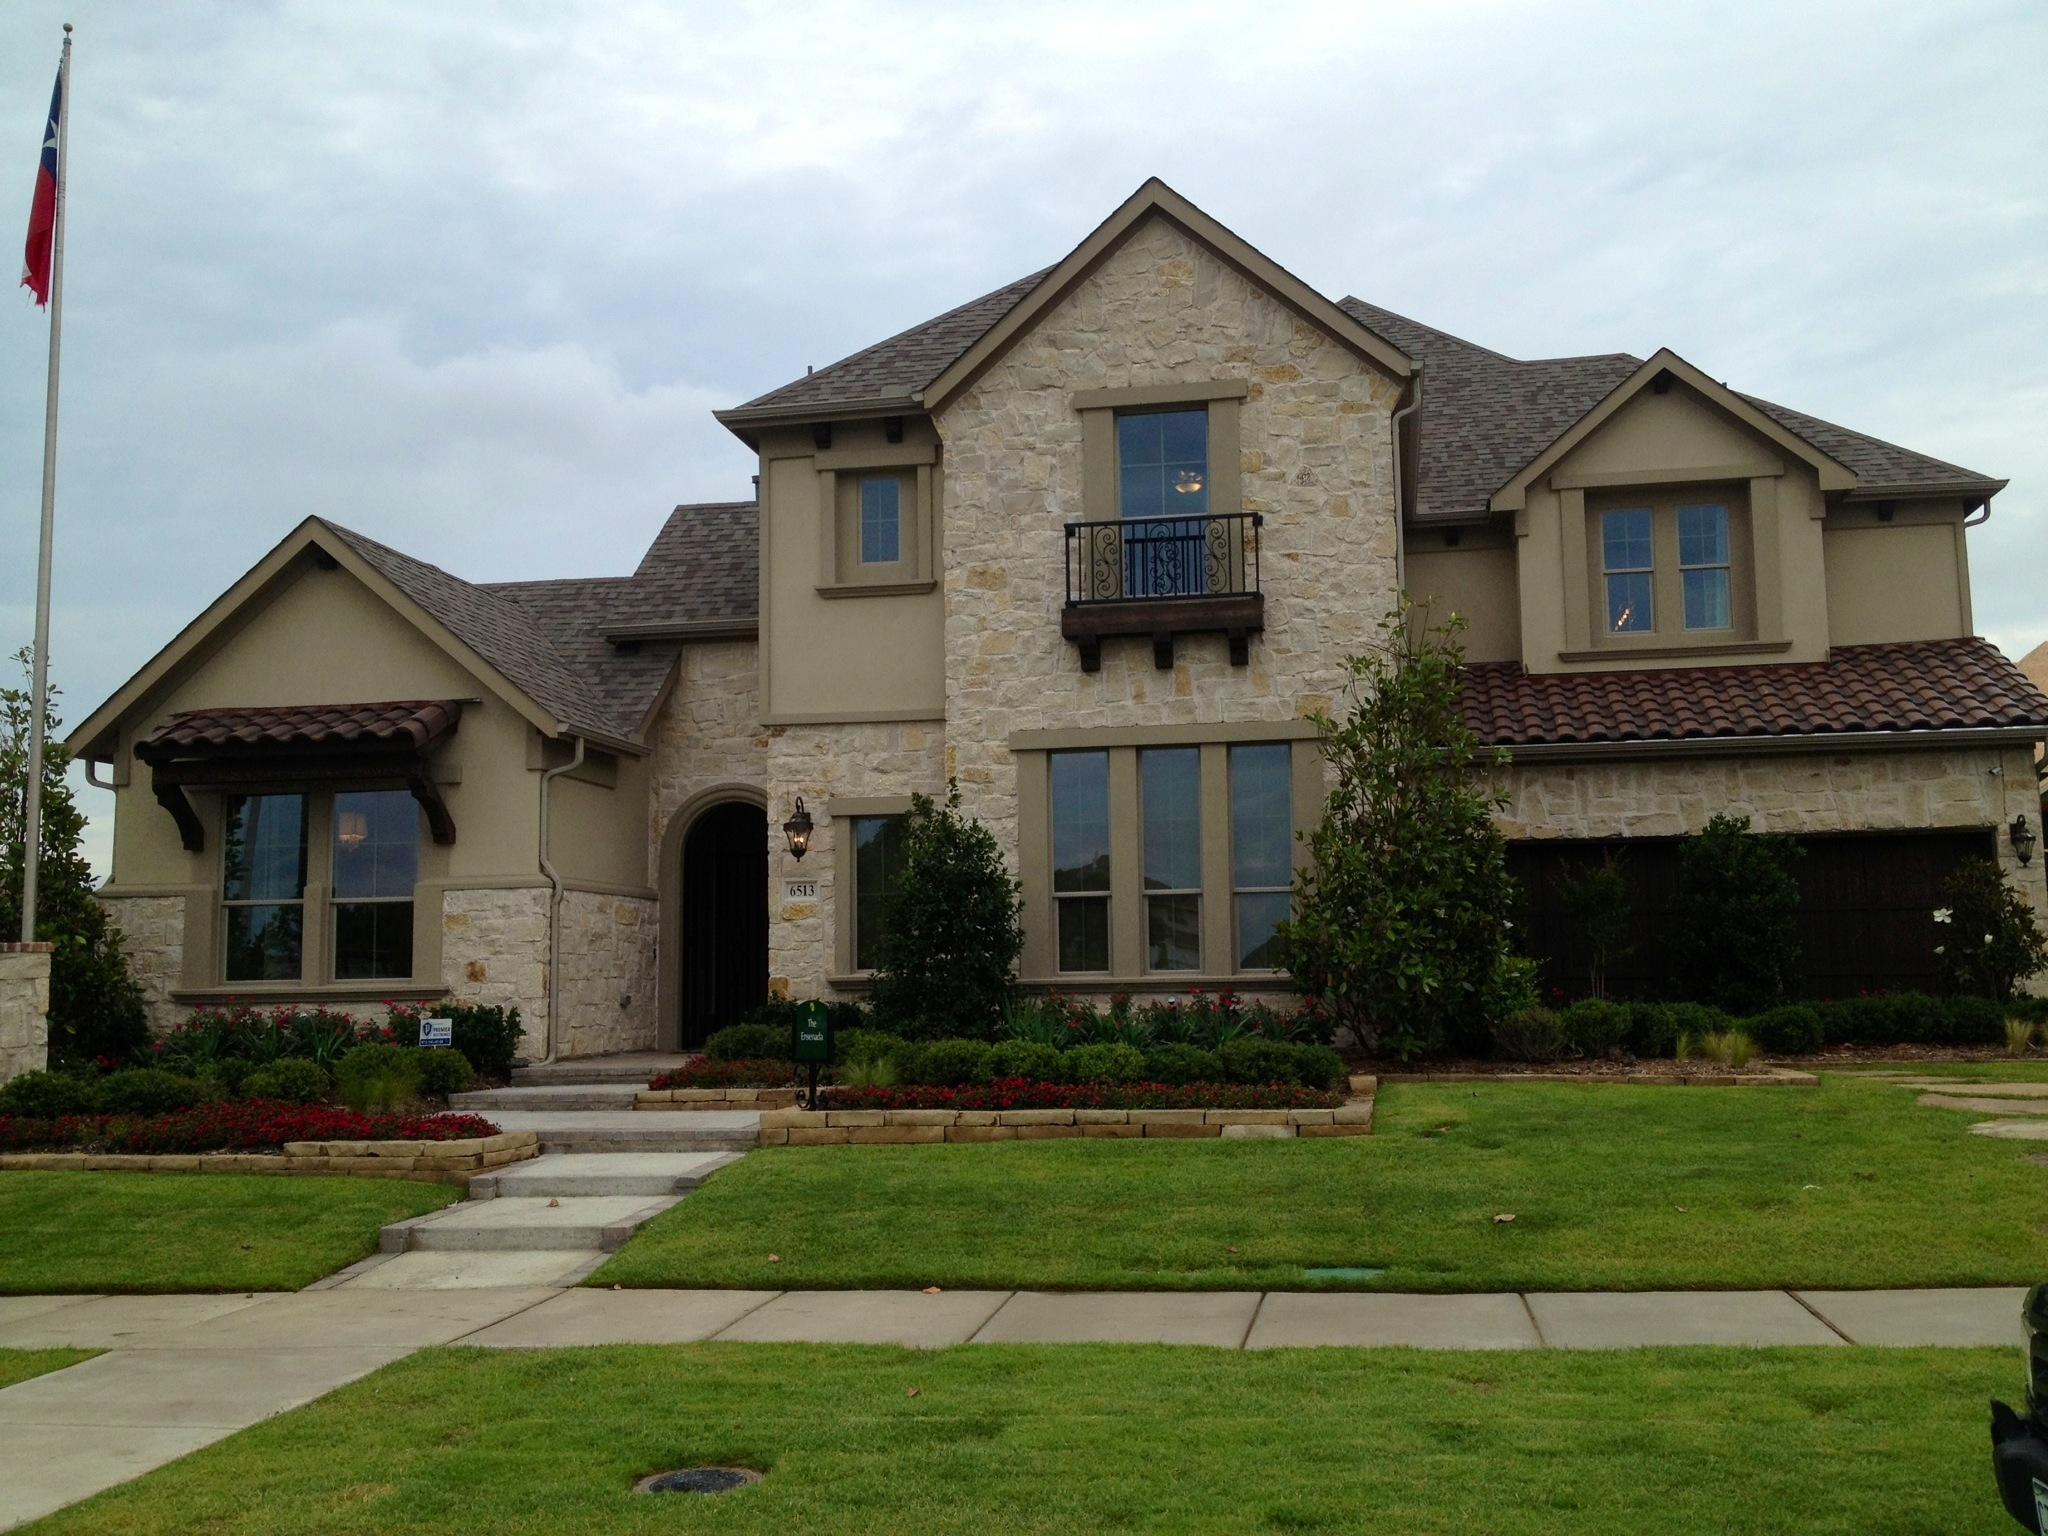 drees homes update frisco richwoods lexington frisco drees homes in phillips creek ranch in frisco selling crazy